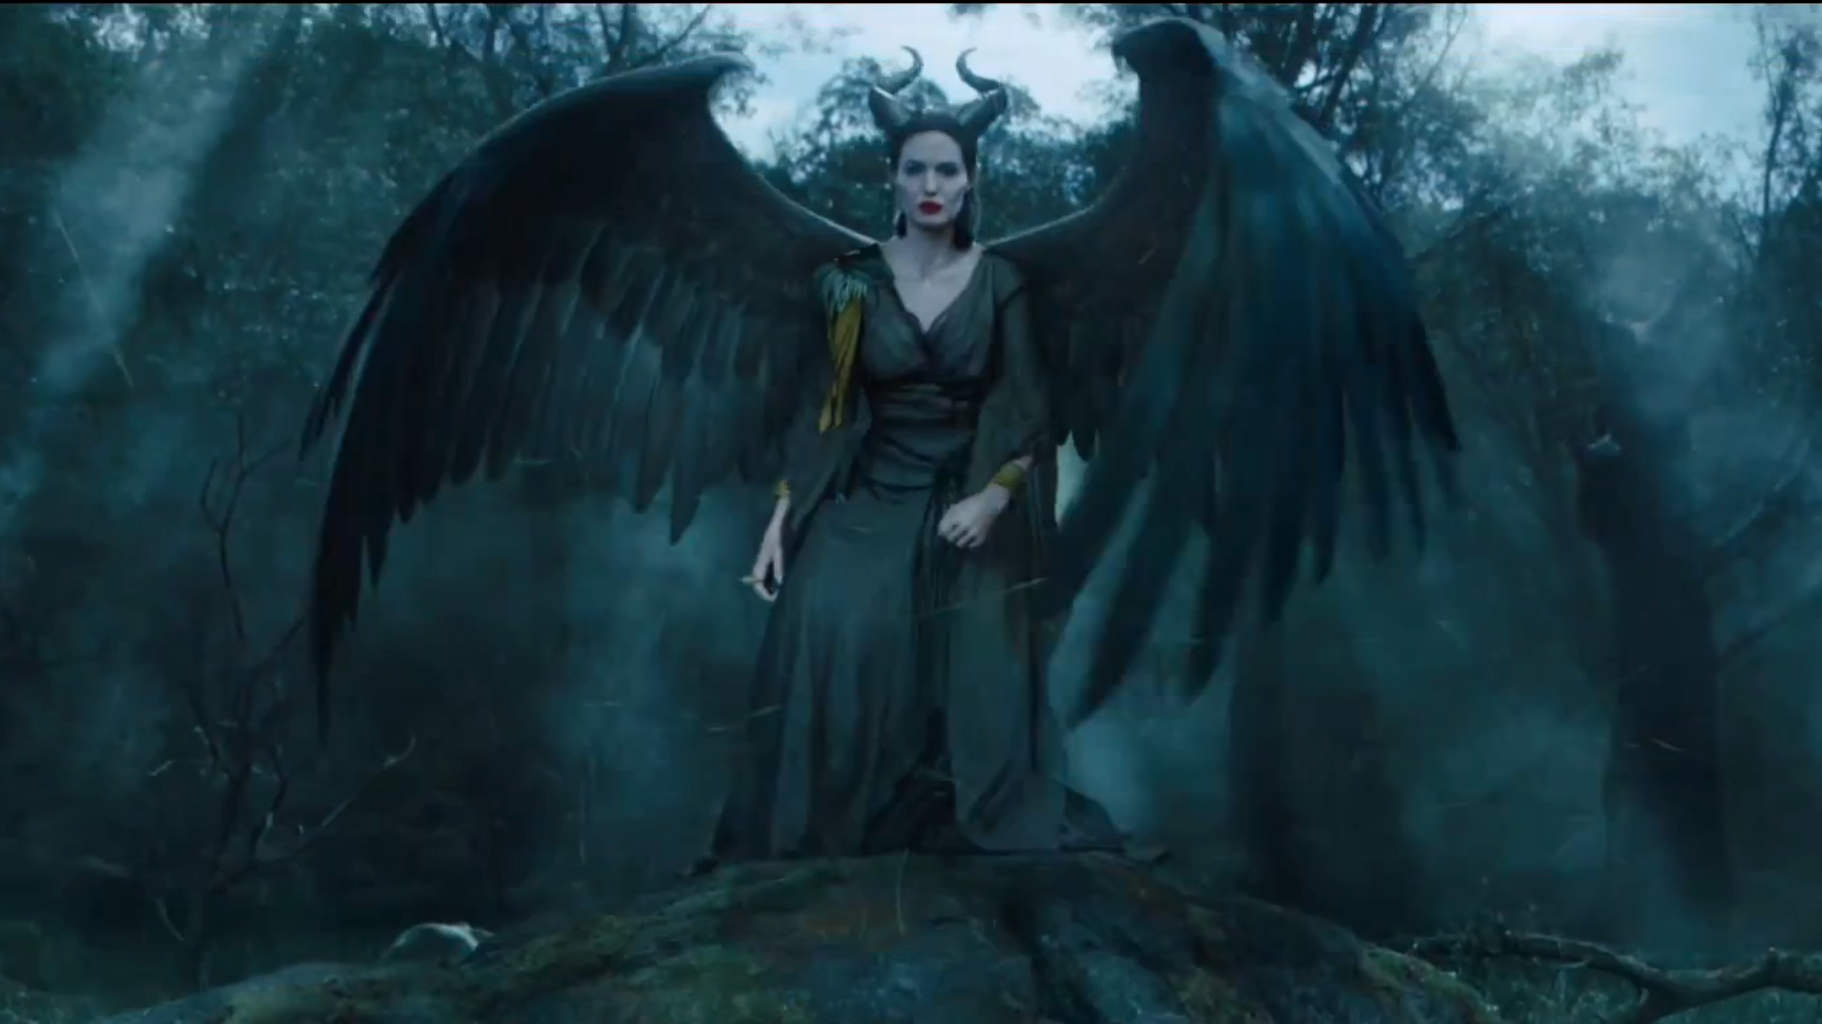 Victoria Falls Hd Wallpaper Maleficent 2014 Thedullwoodexperiment